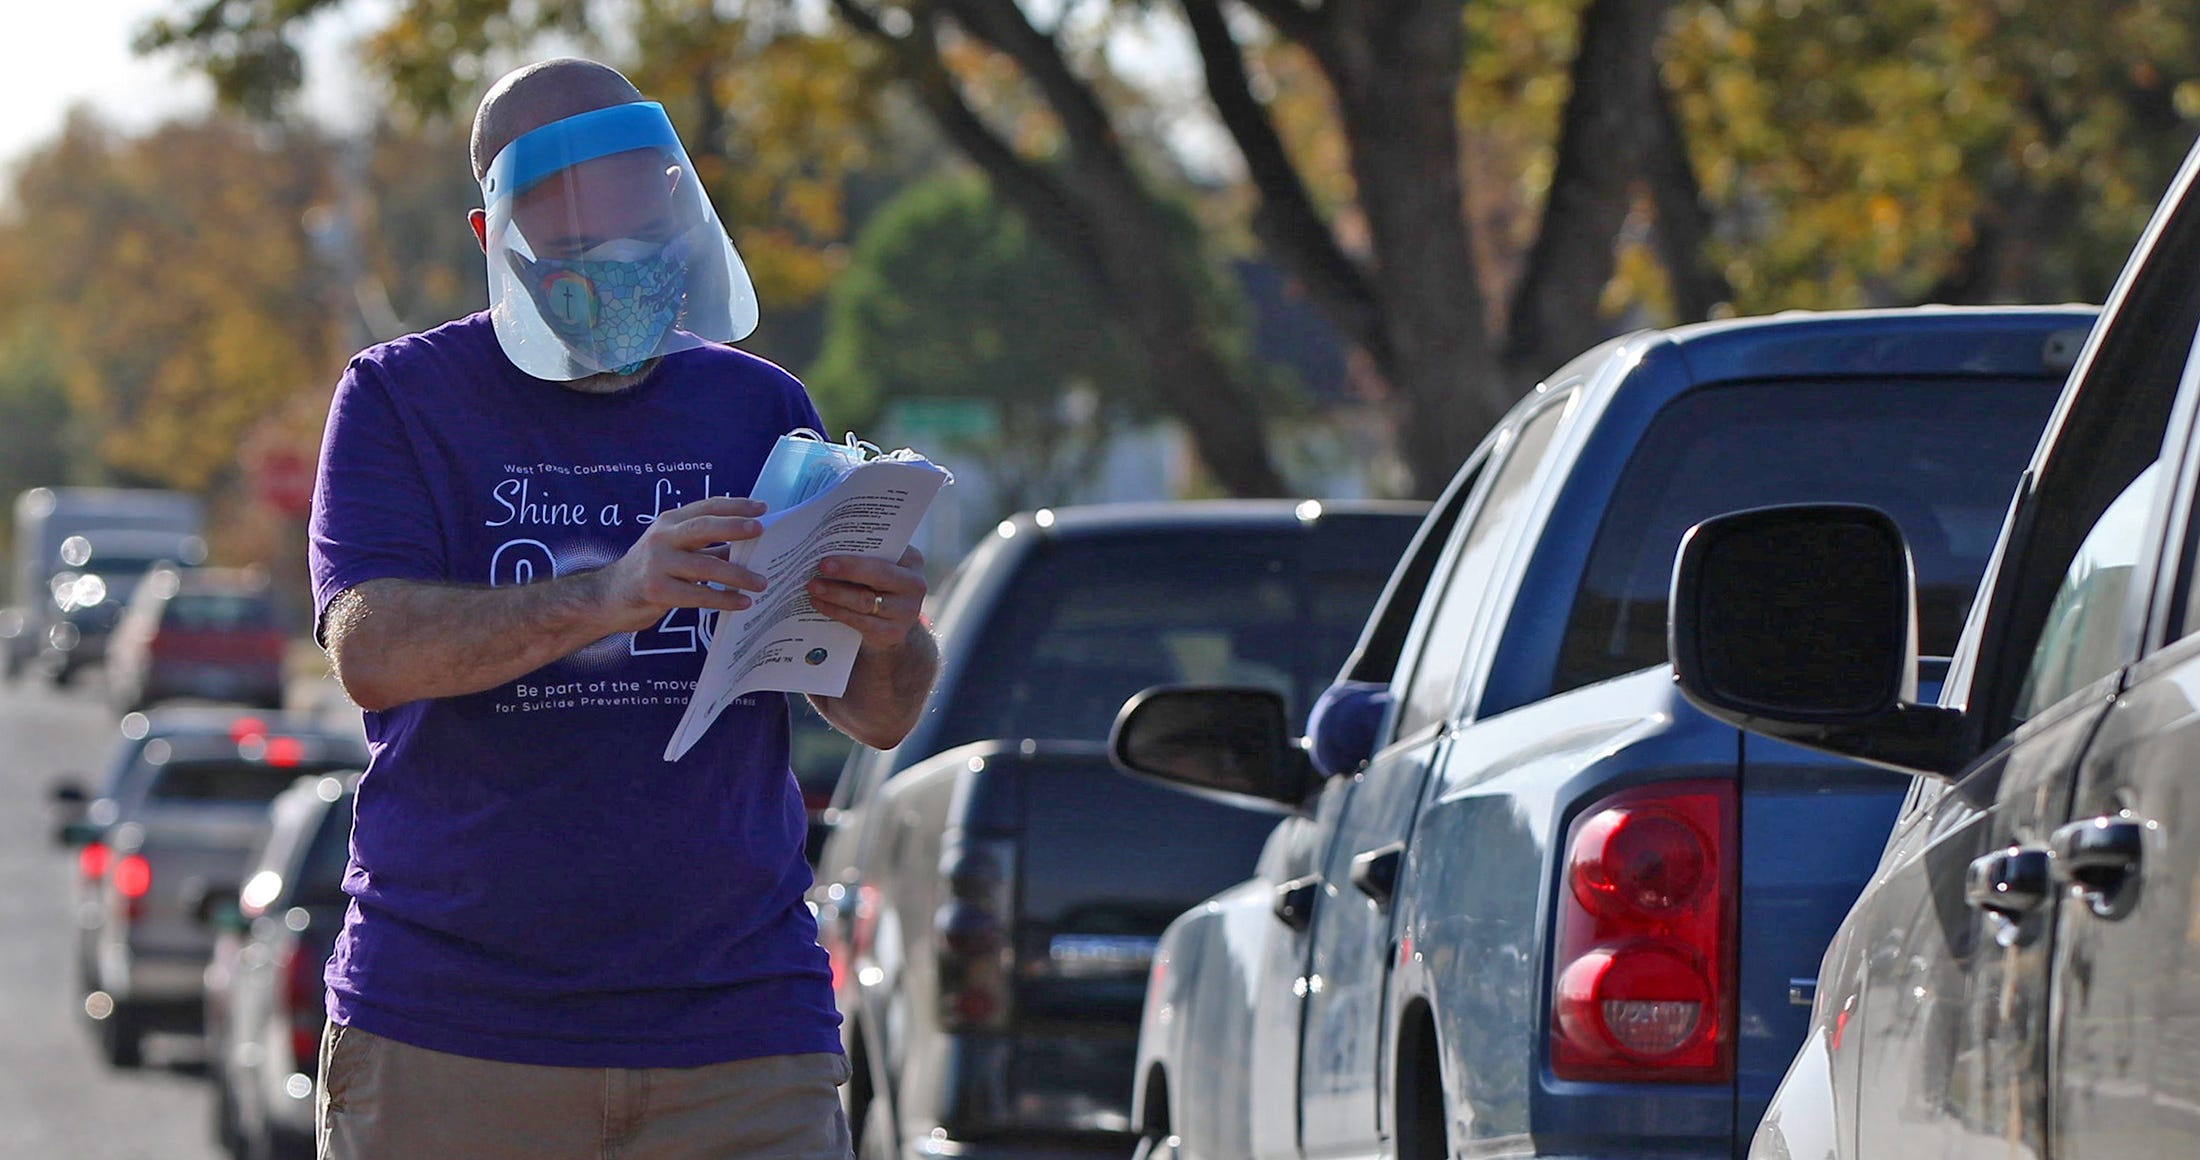 Pastor Timothy Davenport-Herbst directs traffic during a food distribution event at the St. Paul Presbyterian Church on Saturday, Nov. 21, 2020.